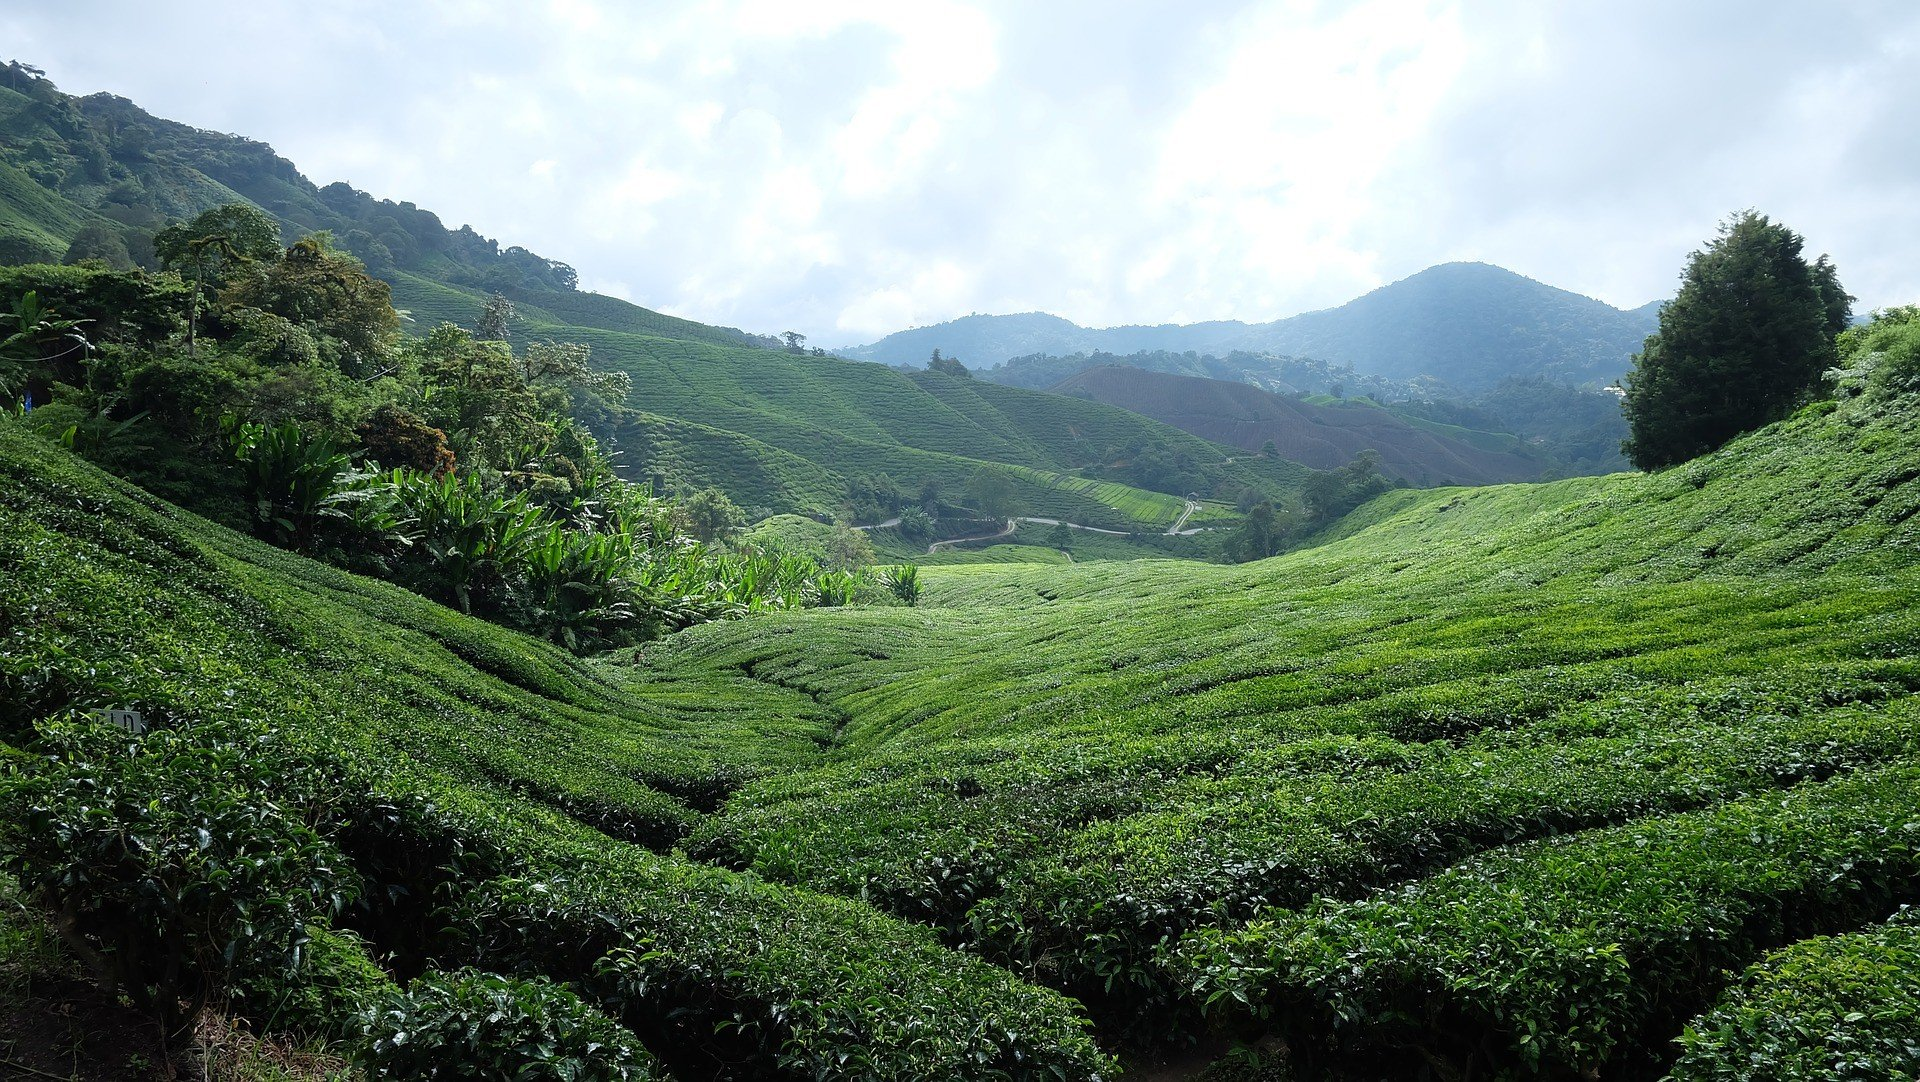 Tea is grown in the Cameron Highlands